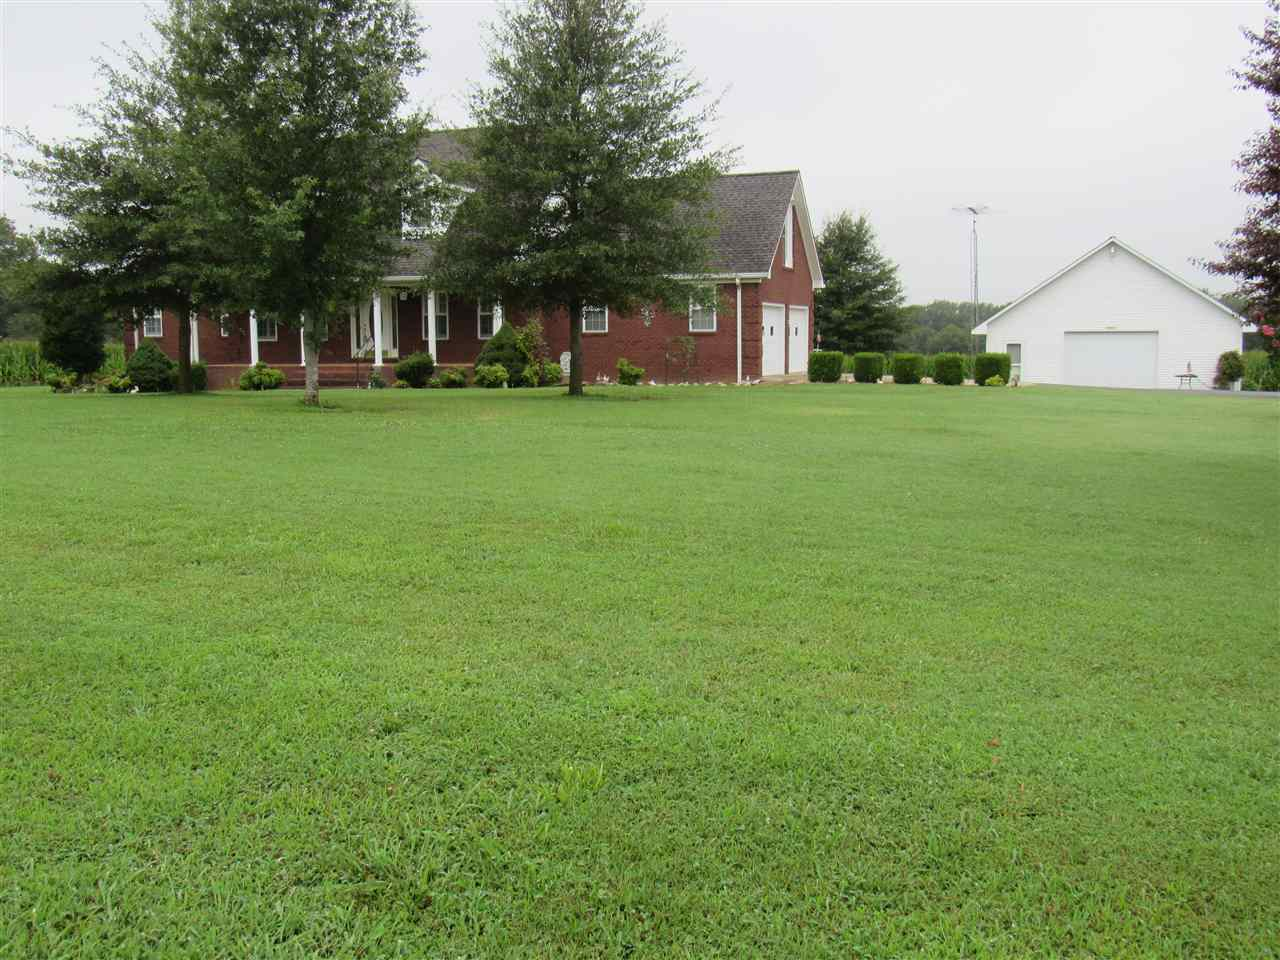 693 Baseline Rd,Kenton,Tennessee 38233,3 Bedrooms Bedrooms,3 BathroomsBathrooms,Residential,693 Baseline Rd,188307